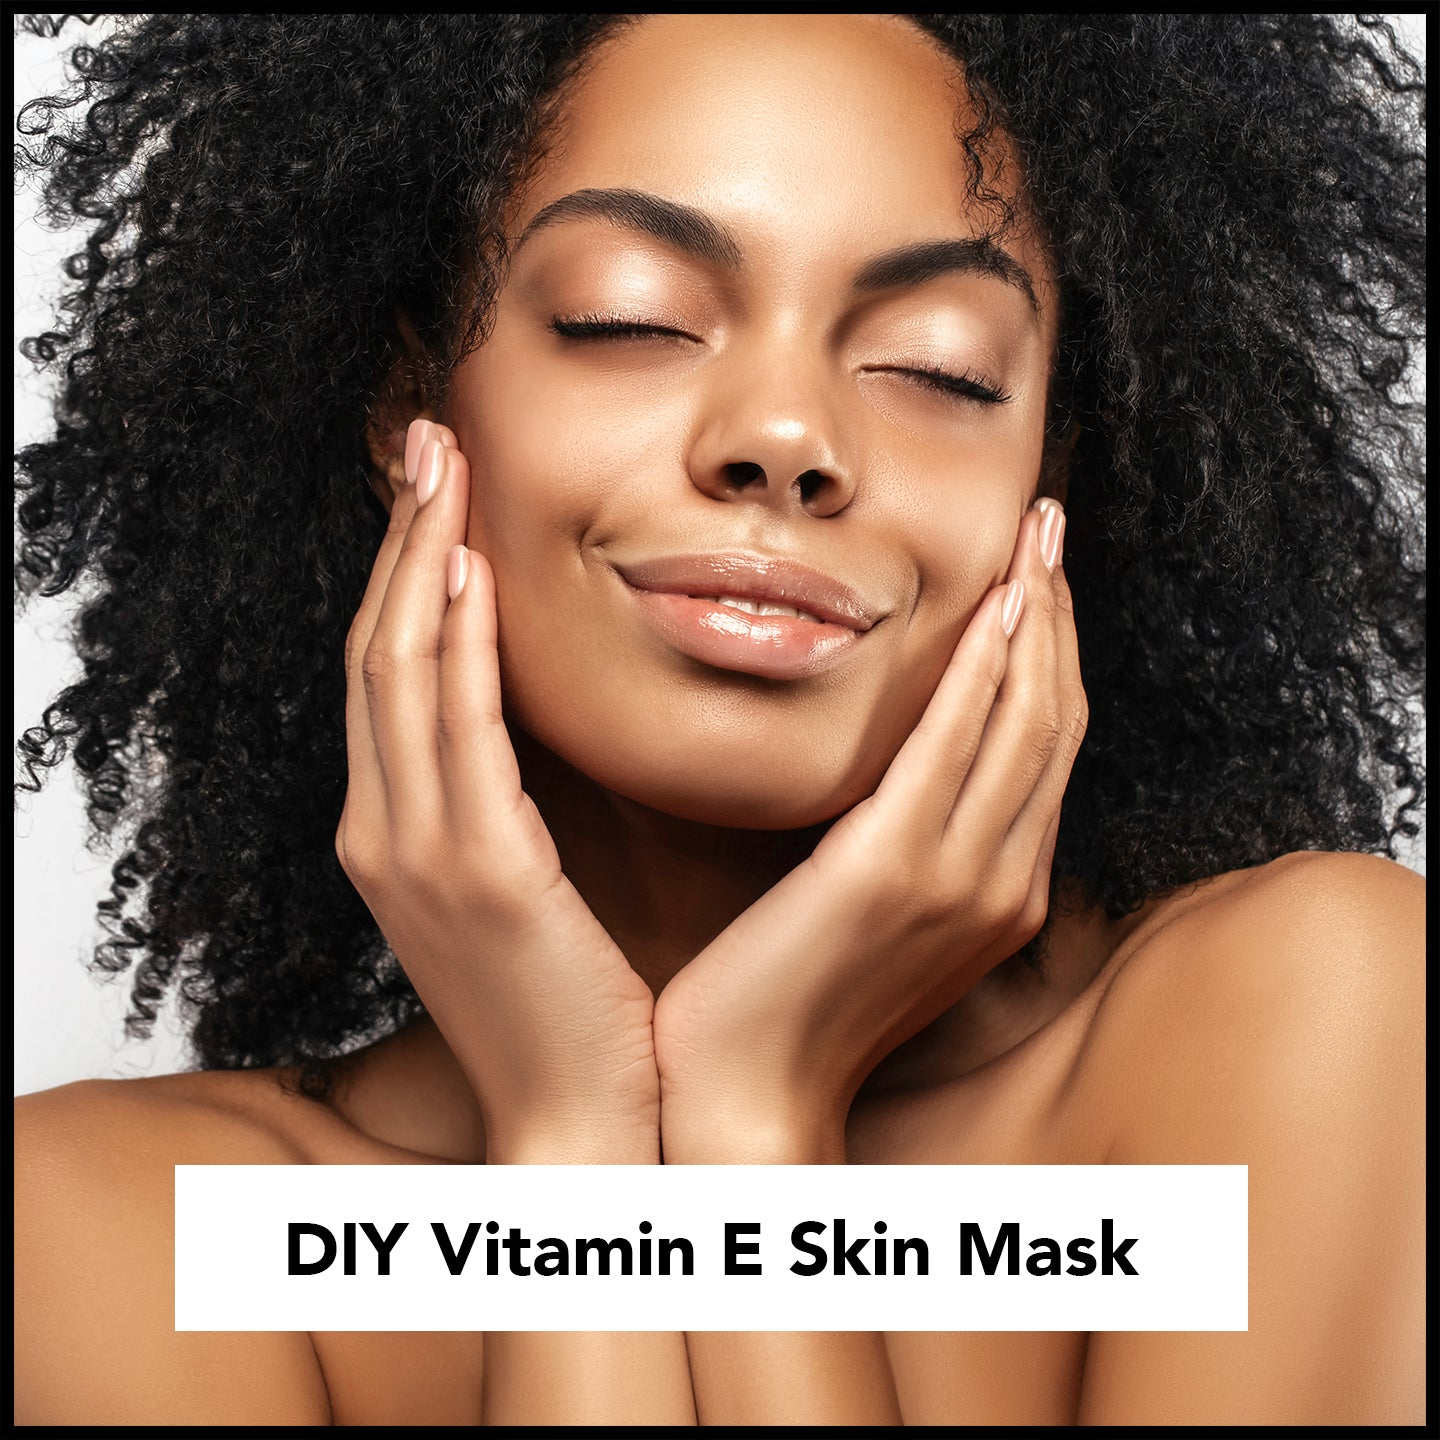 DIY - My 3 Favorite Vitamin E Skin Masks